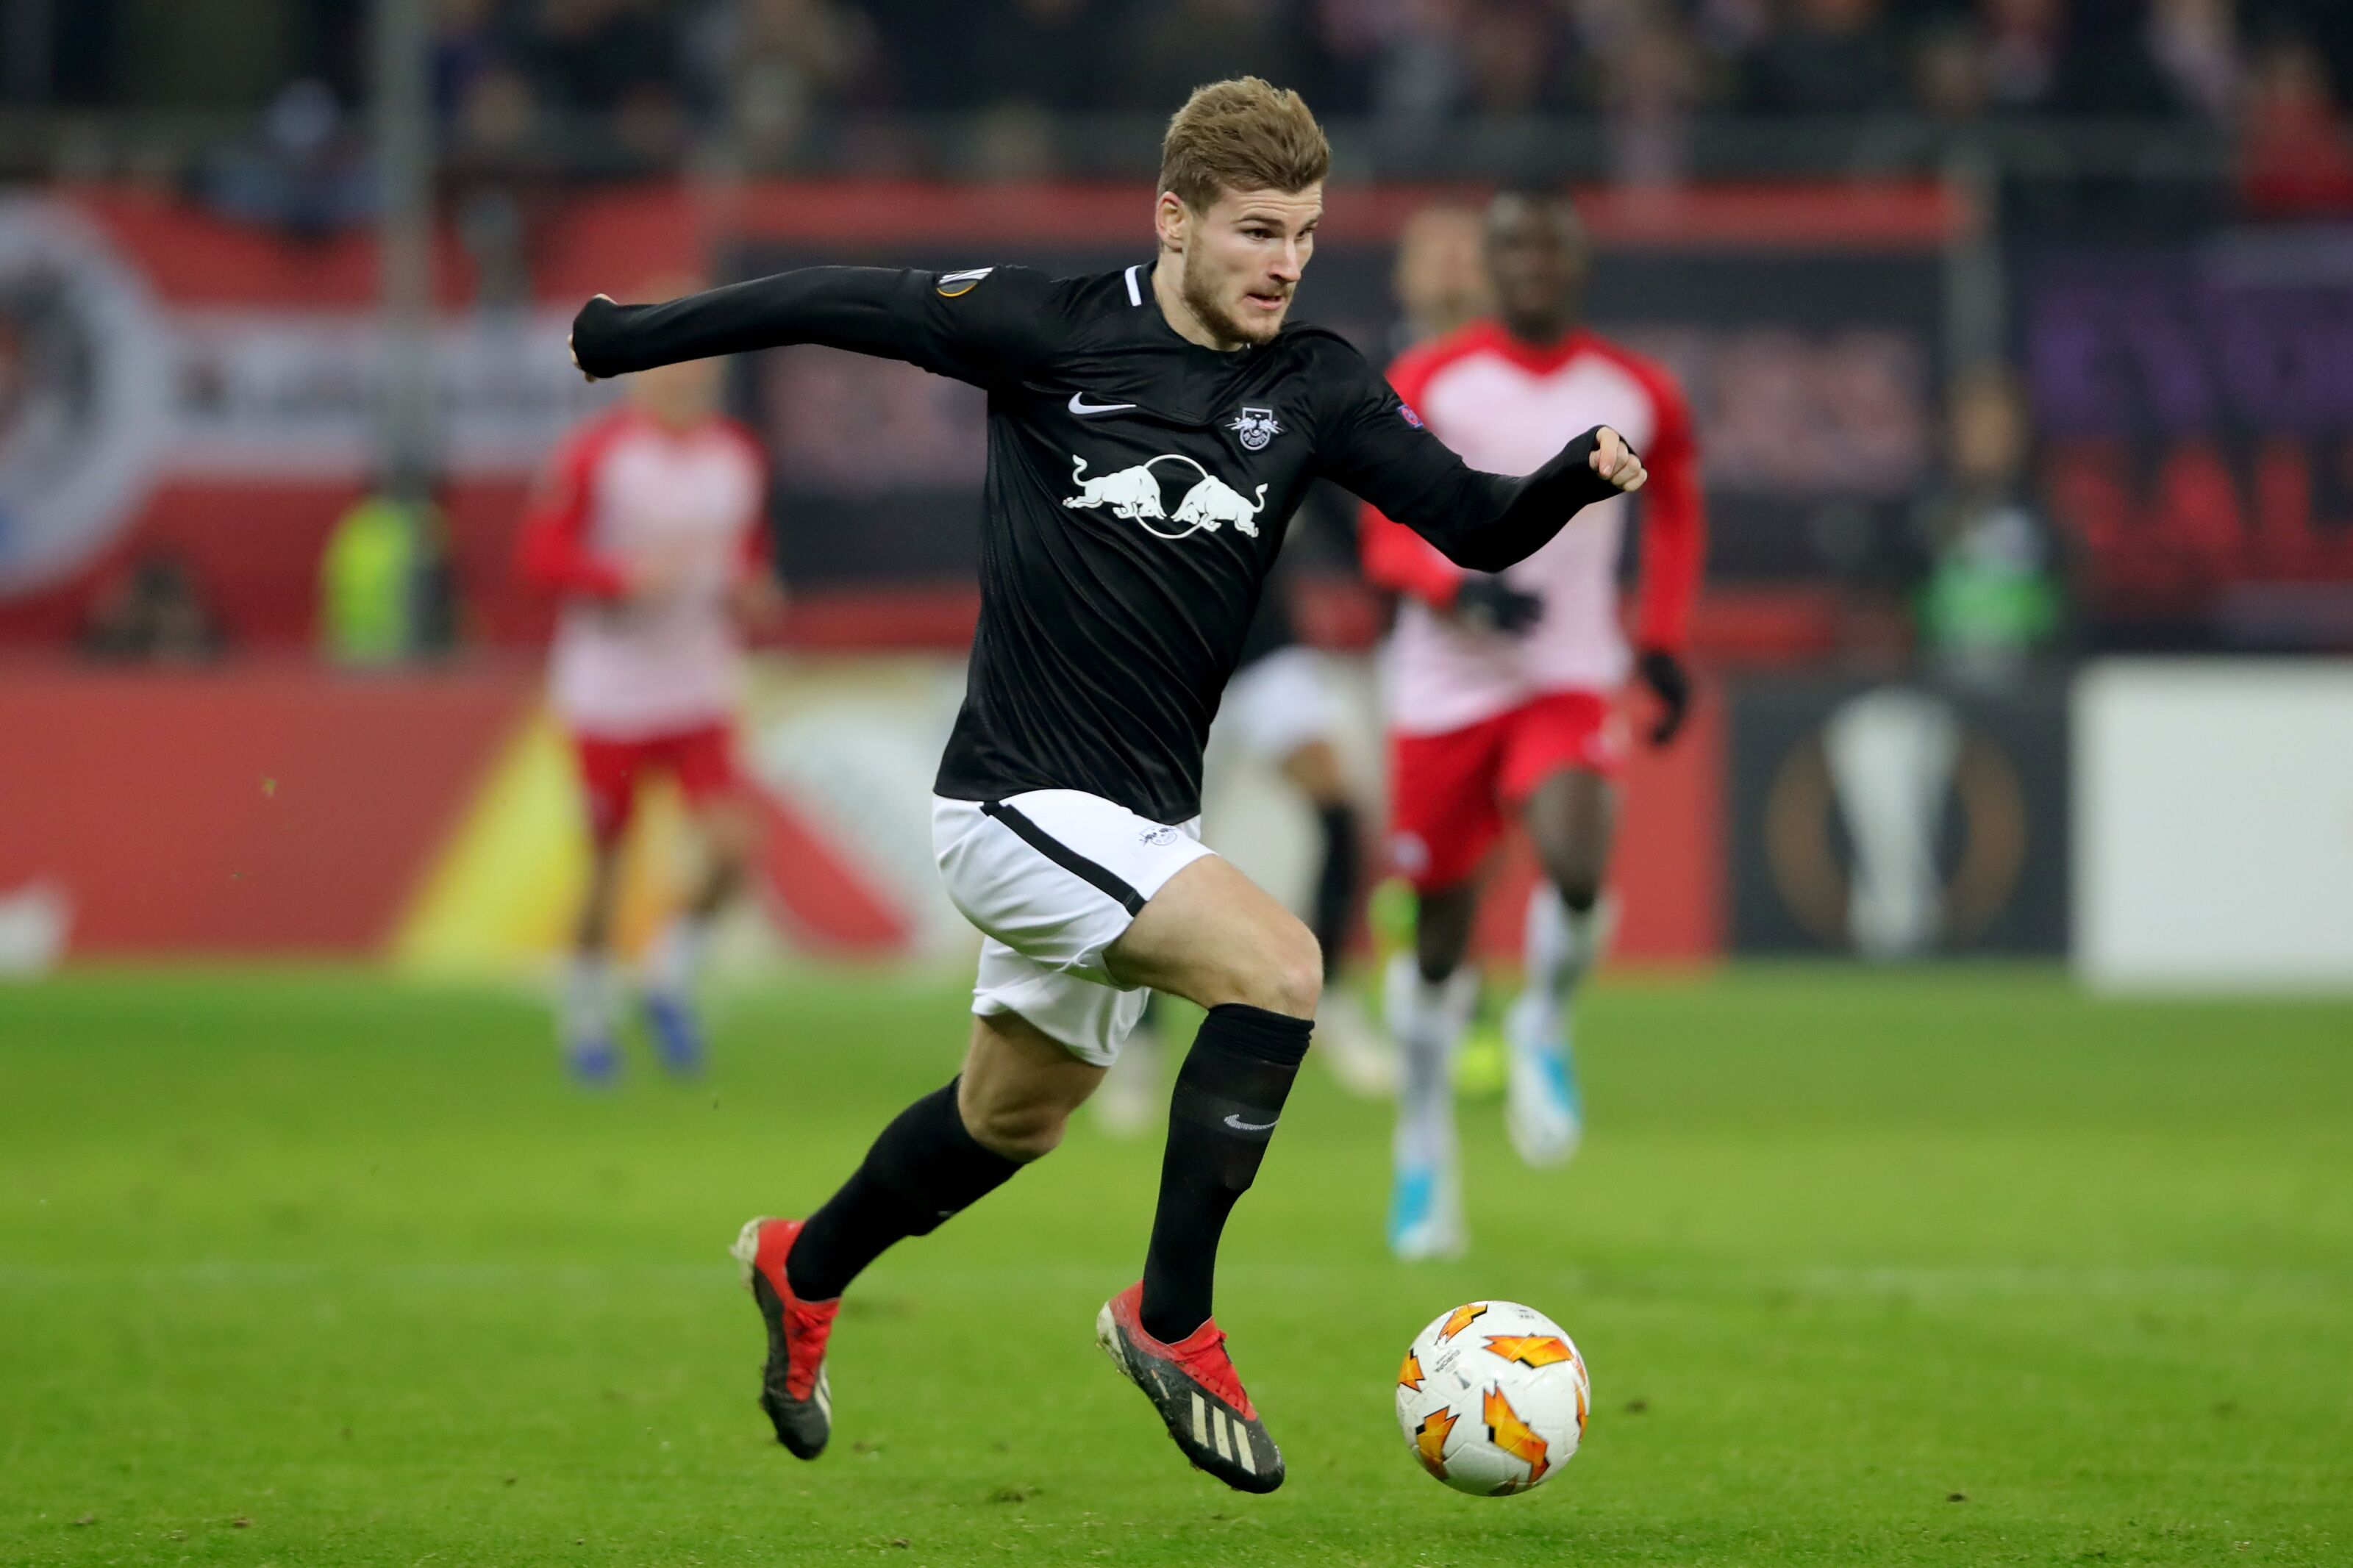 Timo Werner wants to feel the love with Jurgen Klopp